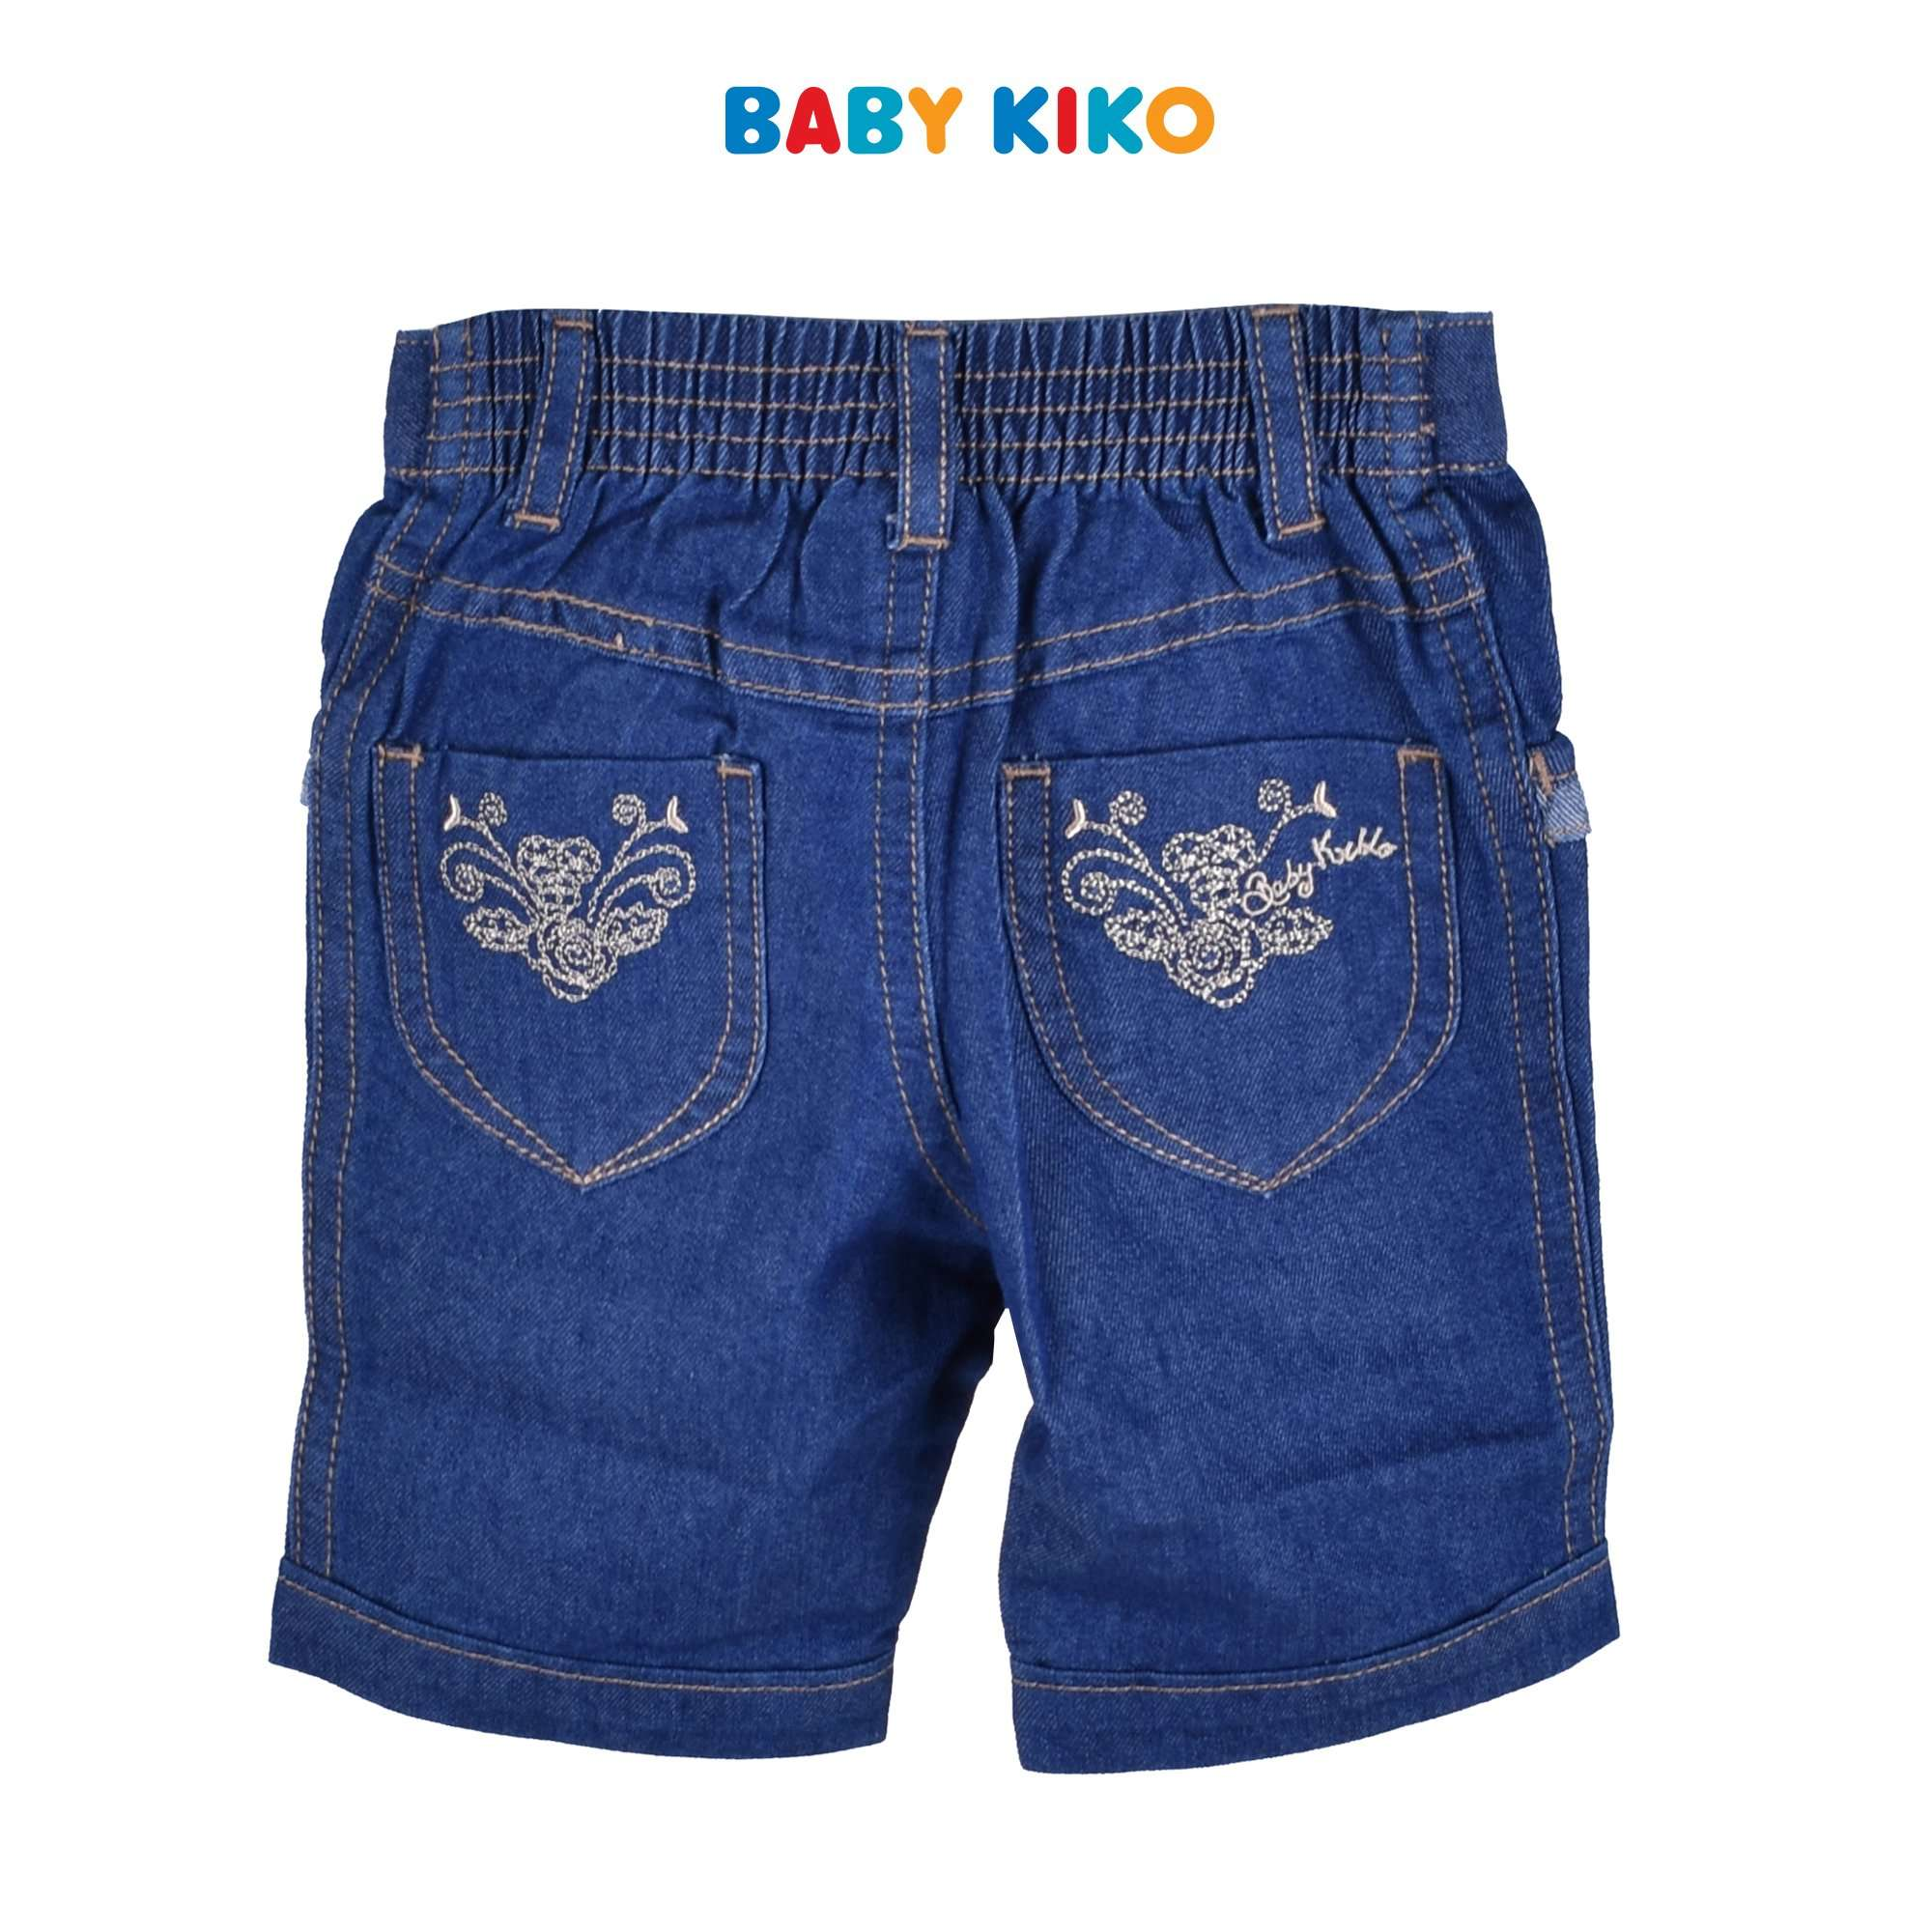 Baby KIKO Baby Girl Denim Bermuda Denim Blue Infant 330058-201 : Buy Baby KIKO online at CMG.MY